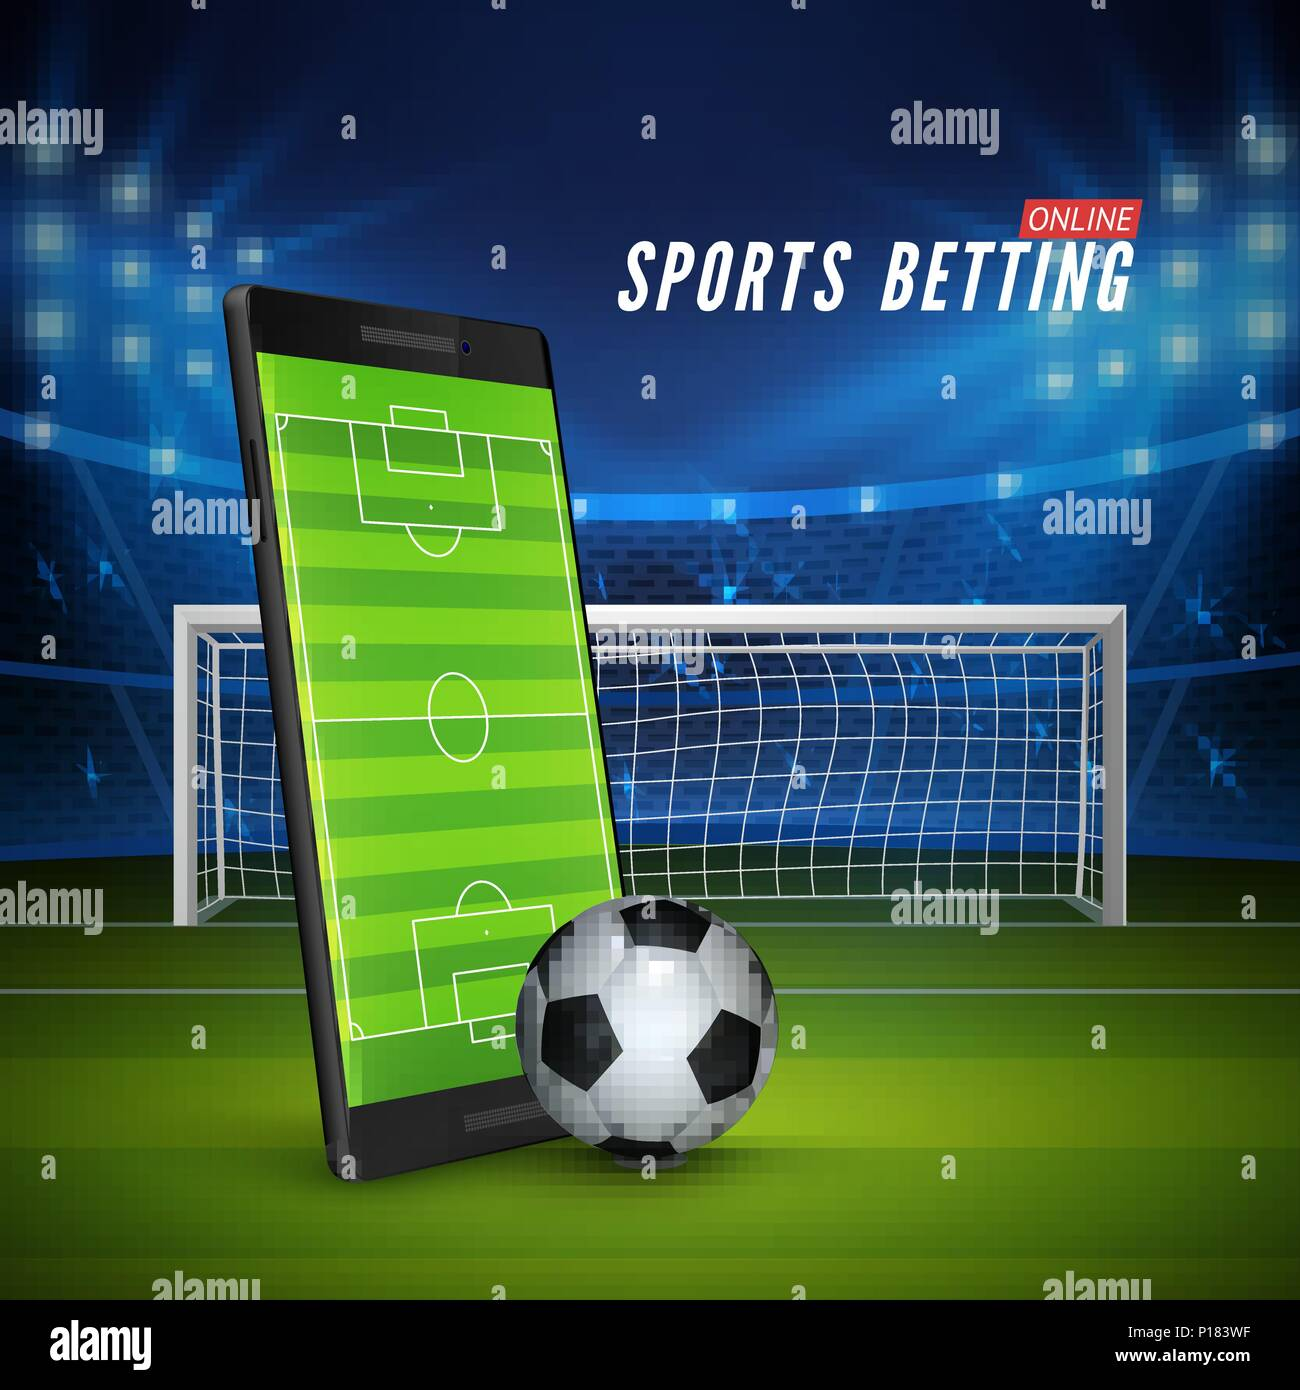 Betting Arena Betting Bet Stock Photos Amp Betting Arena